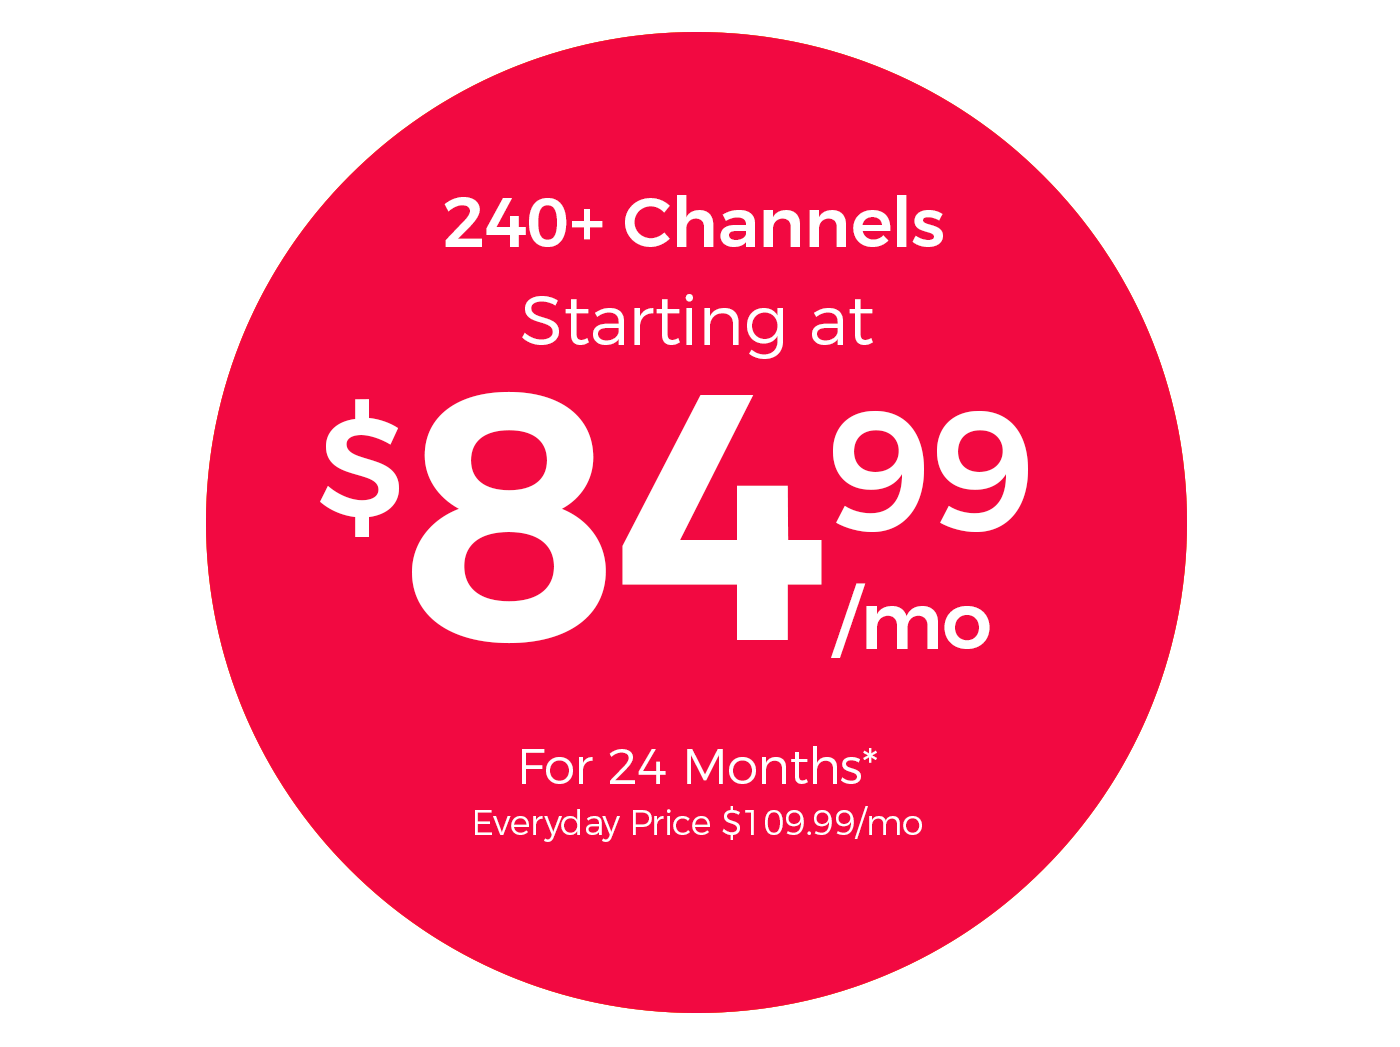 240+ Channels Starting at $84.99/mo for 24 Months*  Everyday price $109.99/mo